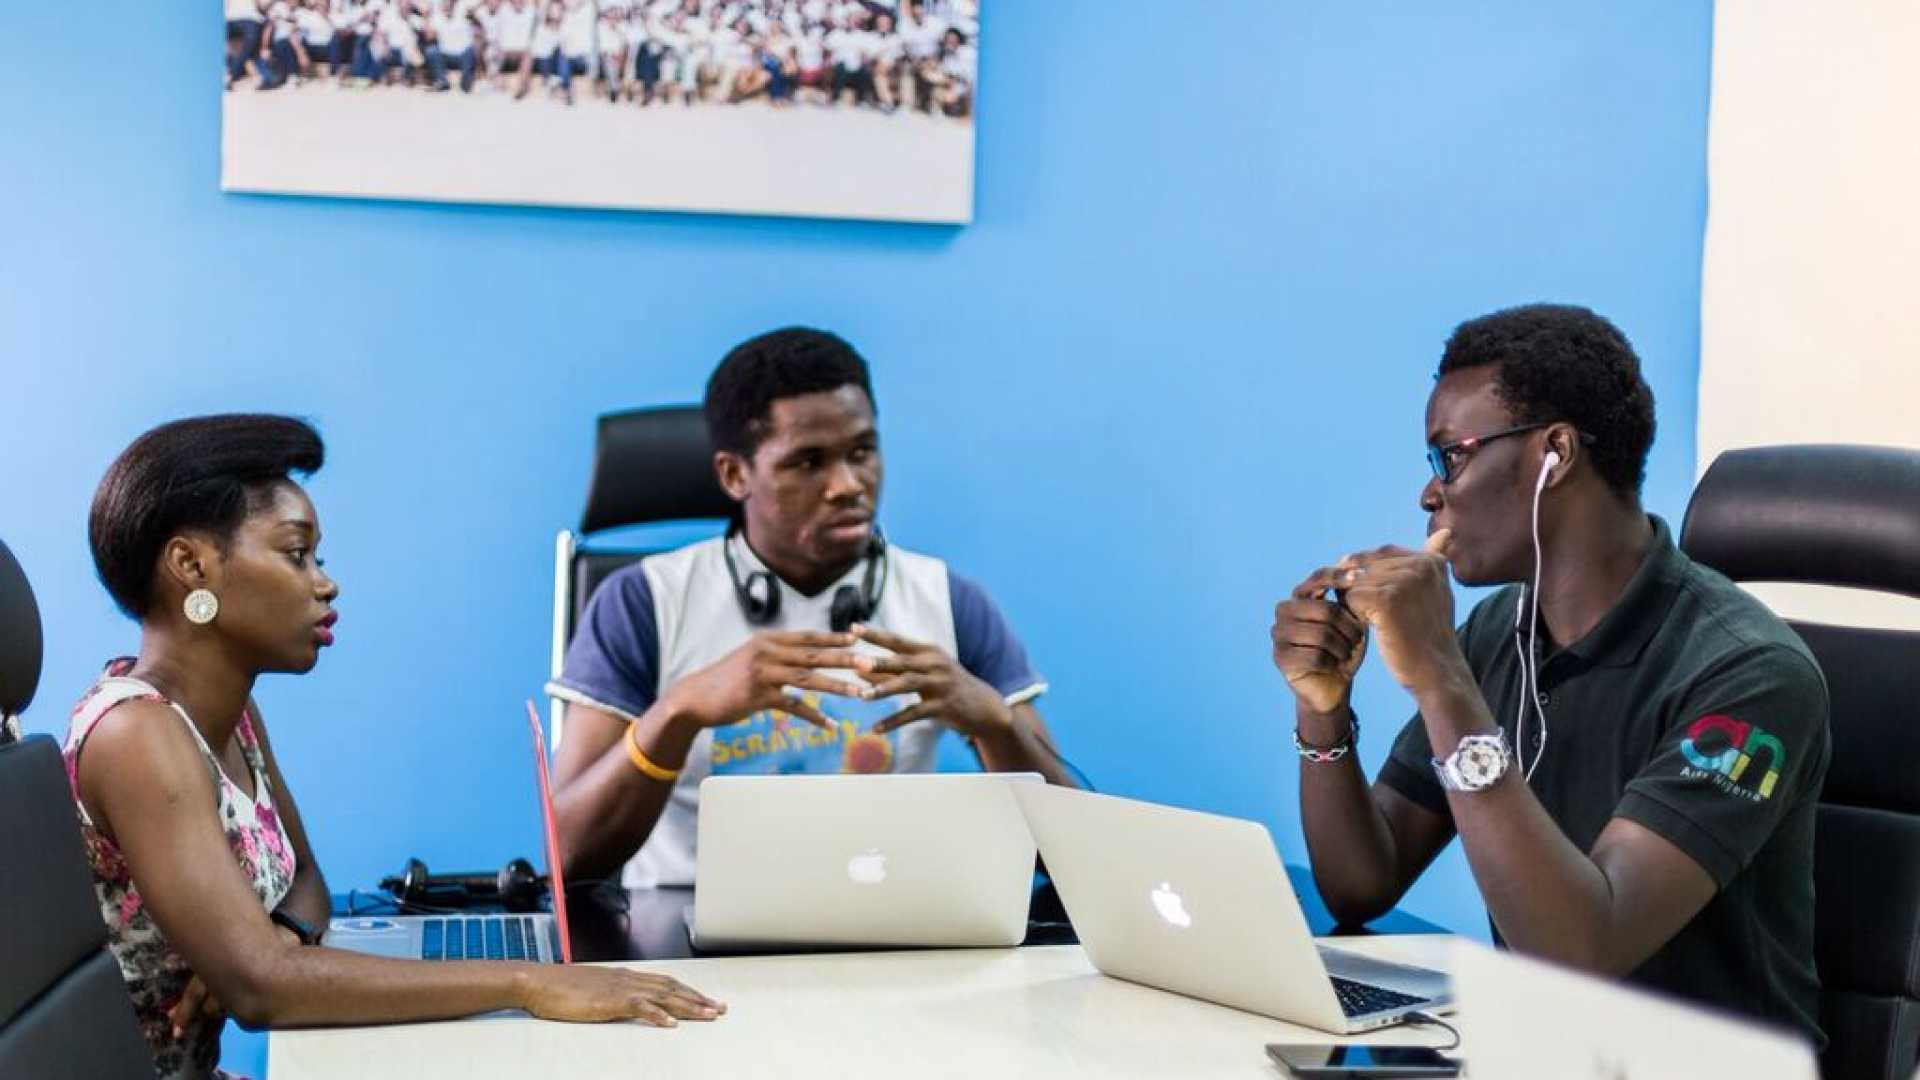 Andela helps African tech talent get jobs with major U.S. companies. Pictured: Tolu Komolafe, Cent Amadi, and Oluwatoni Solarin-Sodara.